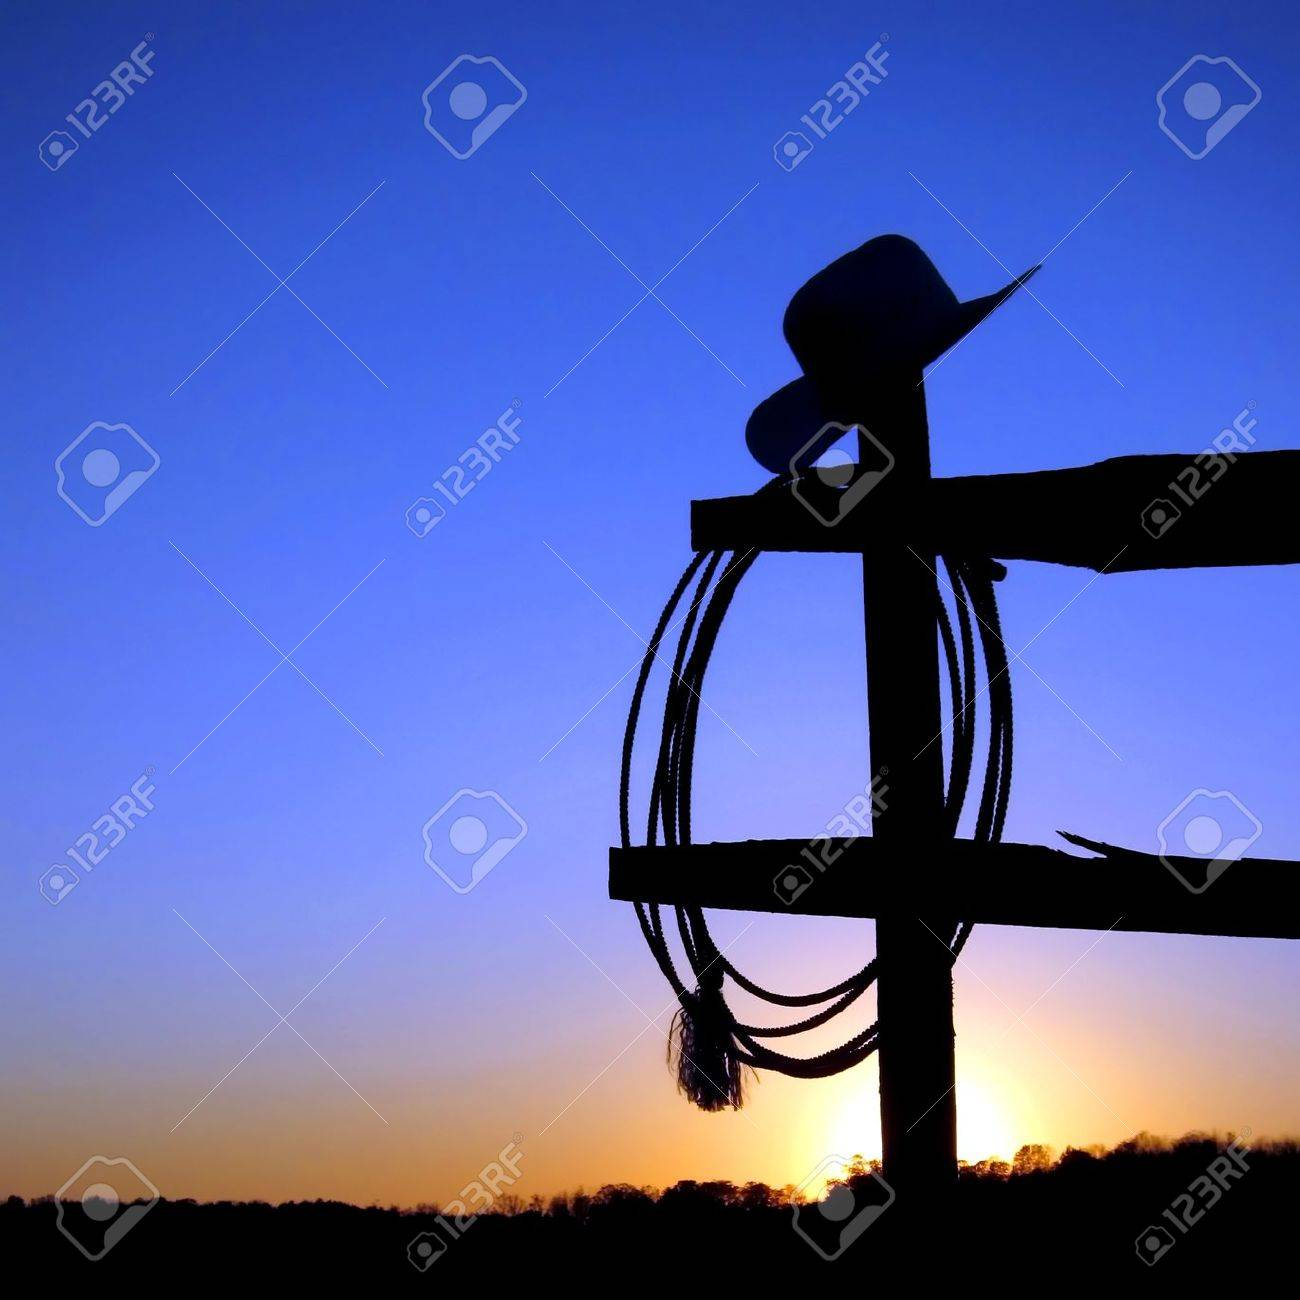 American West rodeo authentic cowboy hat and lariat lasso hanging on a ranch fence post in backlit silhouette over blue sky at sunset Stock Photo - 11241337